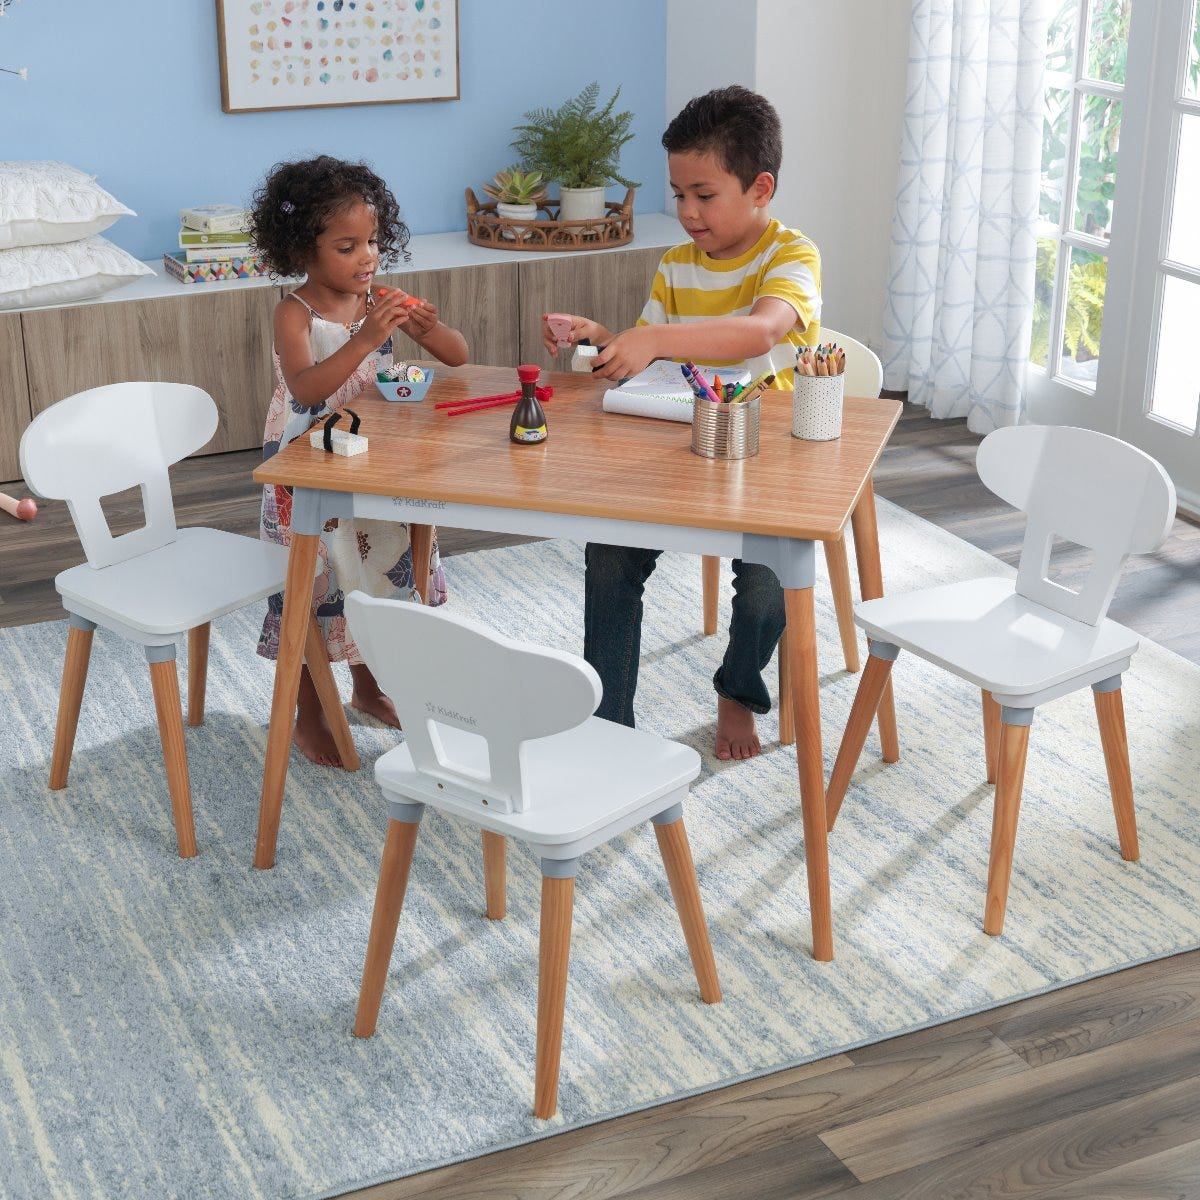 Kiddi Style Childrens Wooden Table and Chair Set Blue